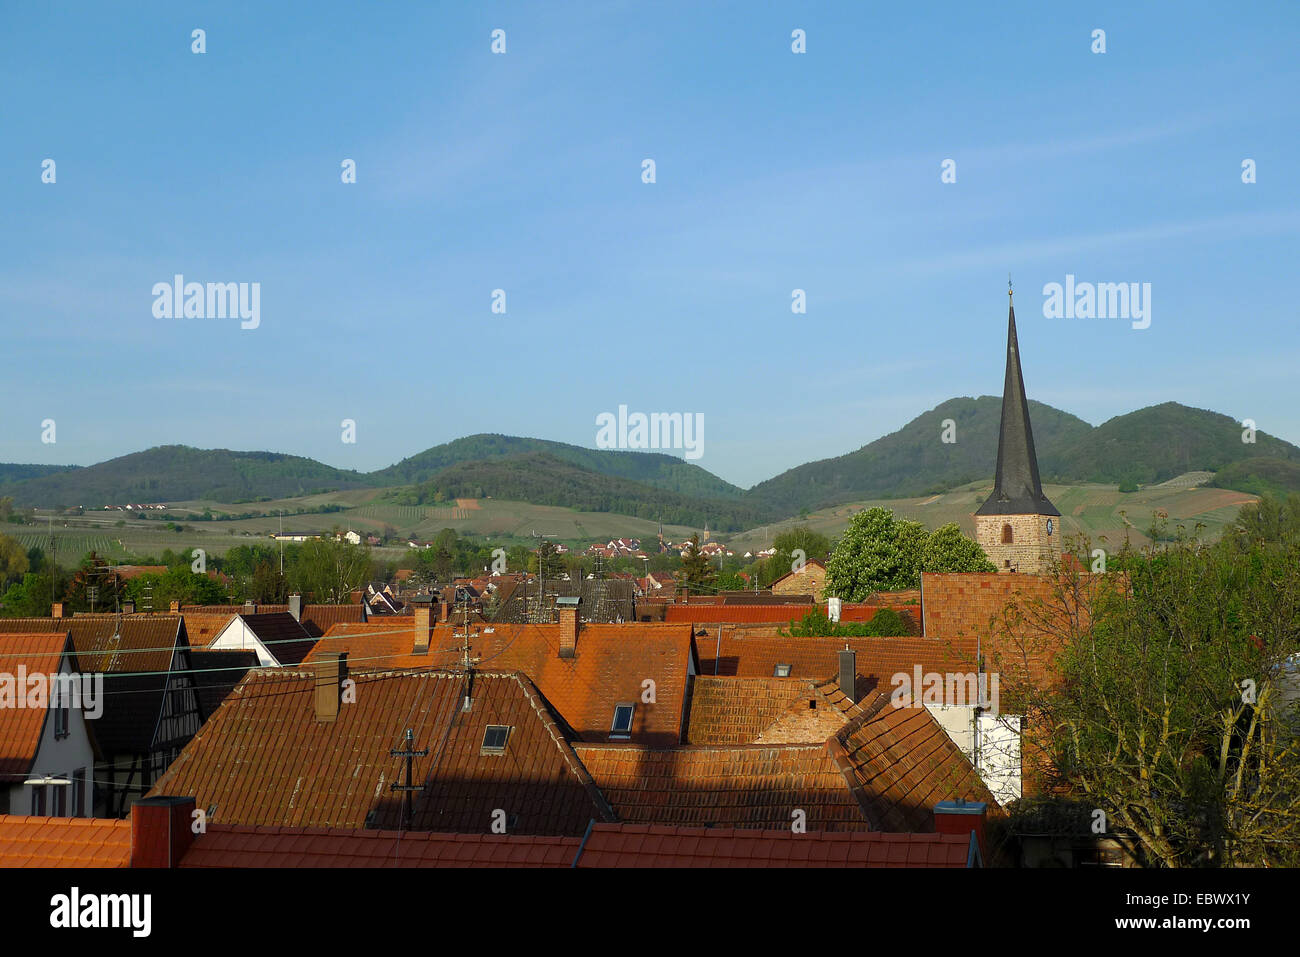 wine town Sieblingen, Germany, Rhineland-Palatinate, Siebeldingen Stock Photo